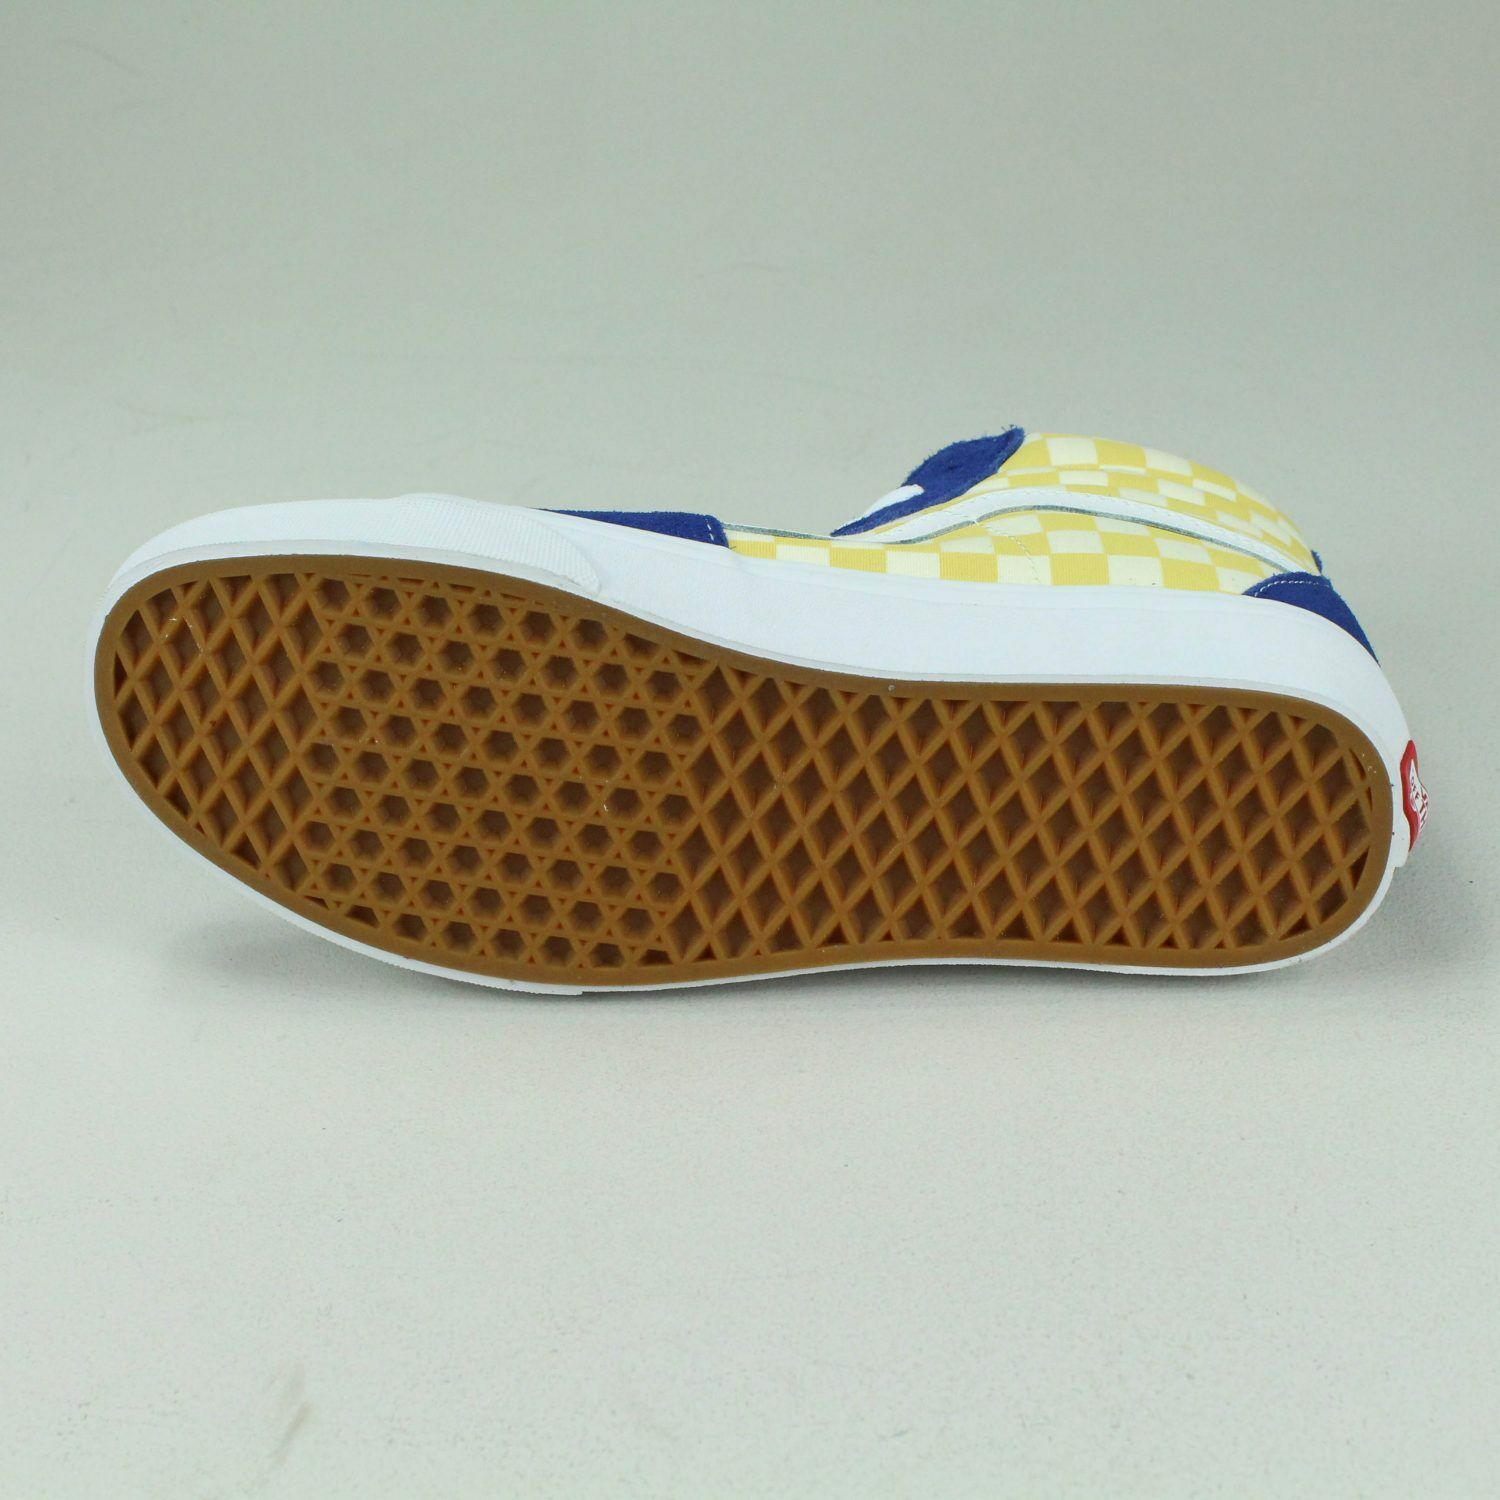 Vans BMX Checkerboard in Sk8 Hi Shoes Trainers in Checkerboard Yellow/Blue in UK Size 6,7,8,9,10 4ce63d